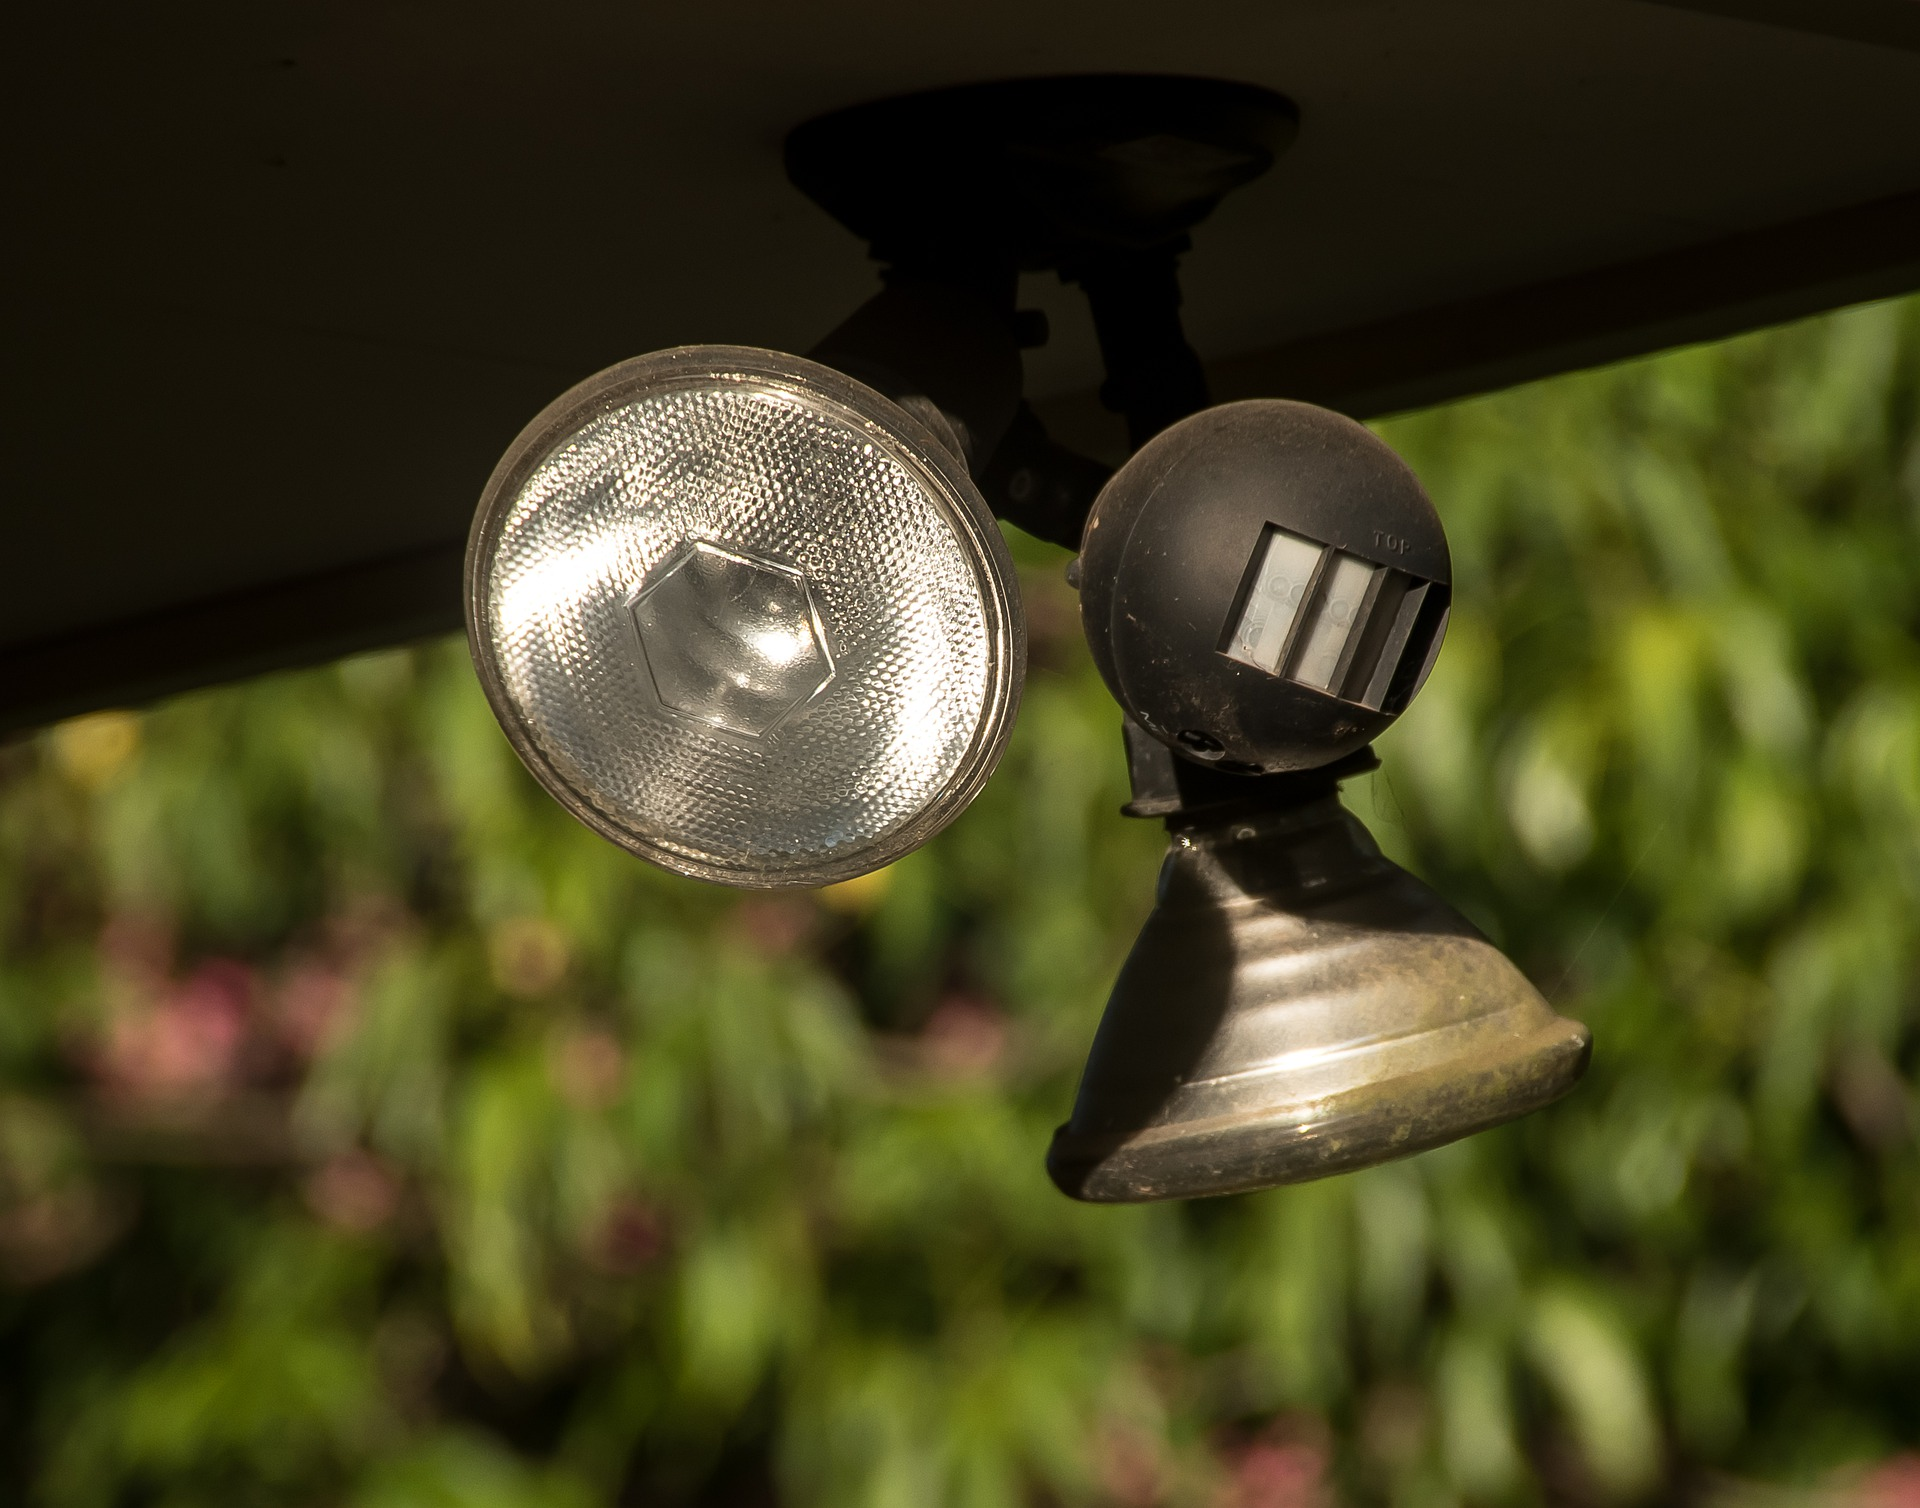 , Motion Detector: Everything About Light In And Around The House, Best Garden, Home And DIY Tips